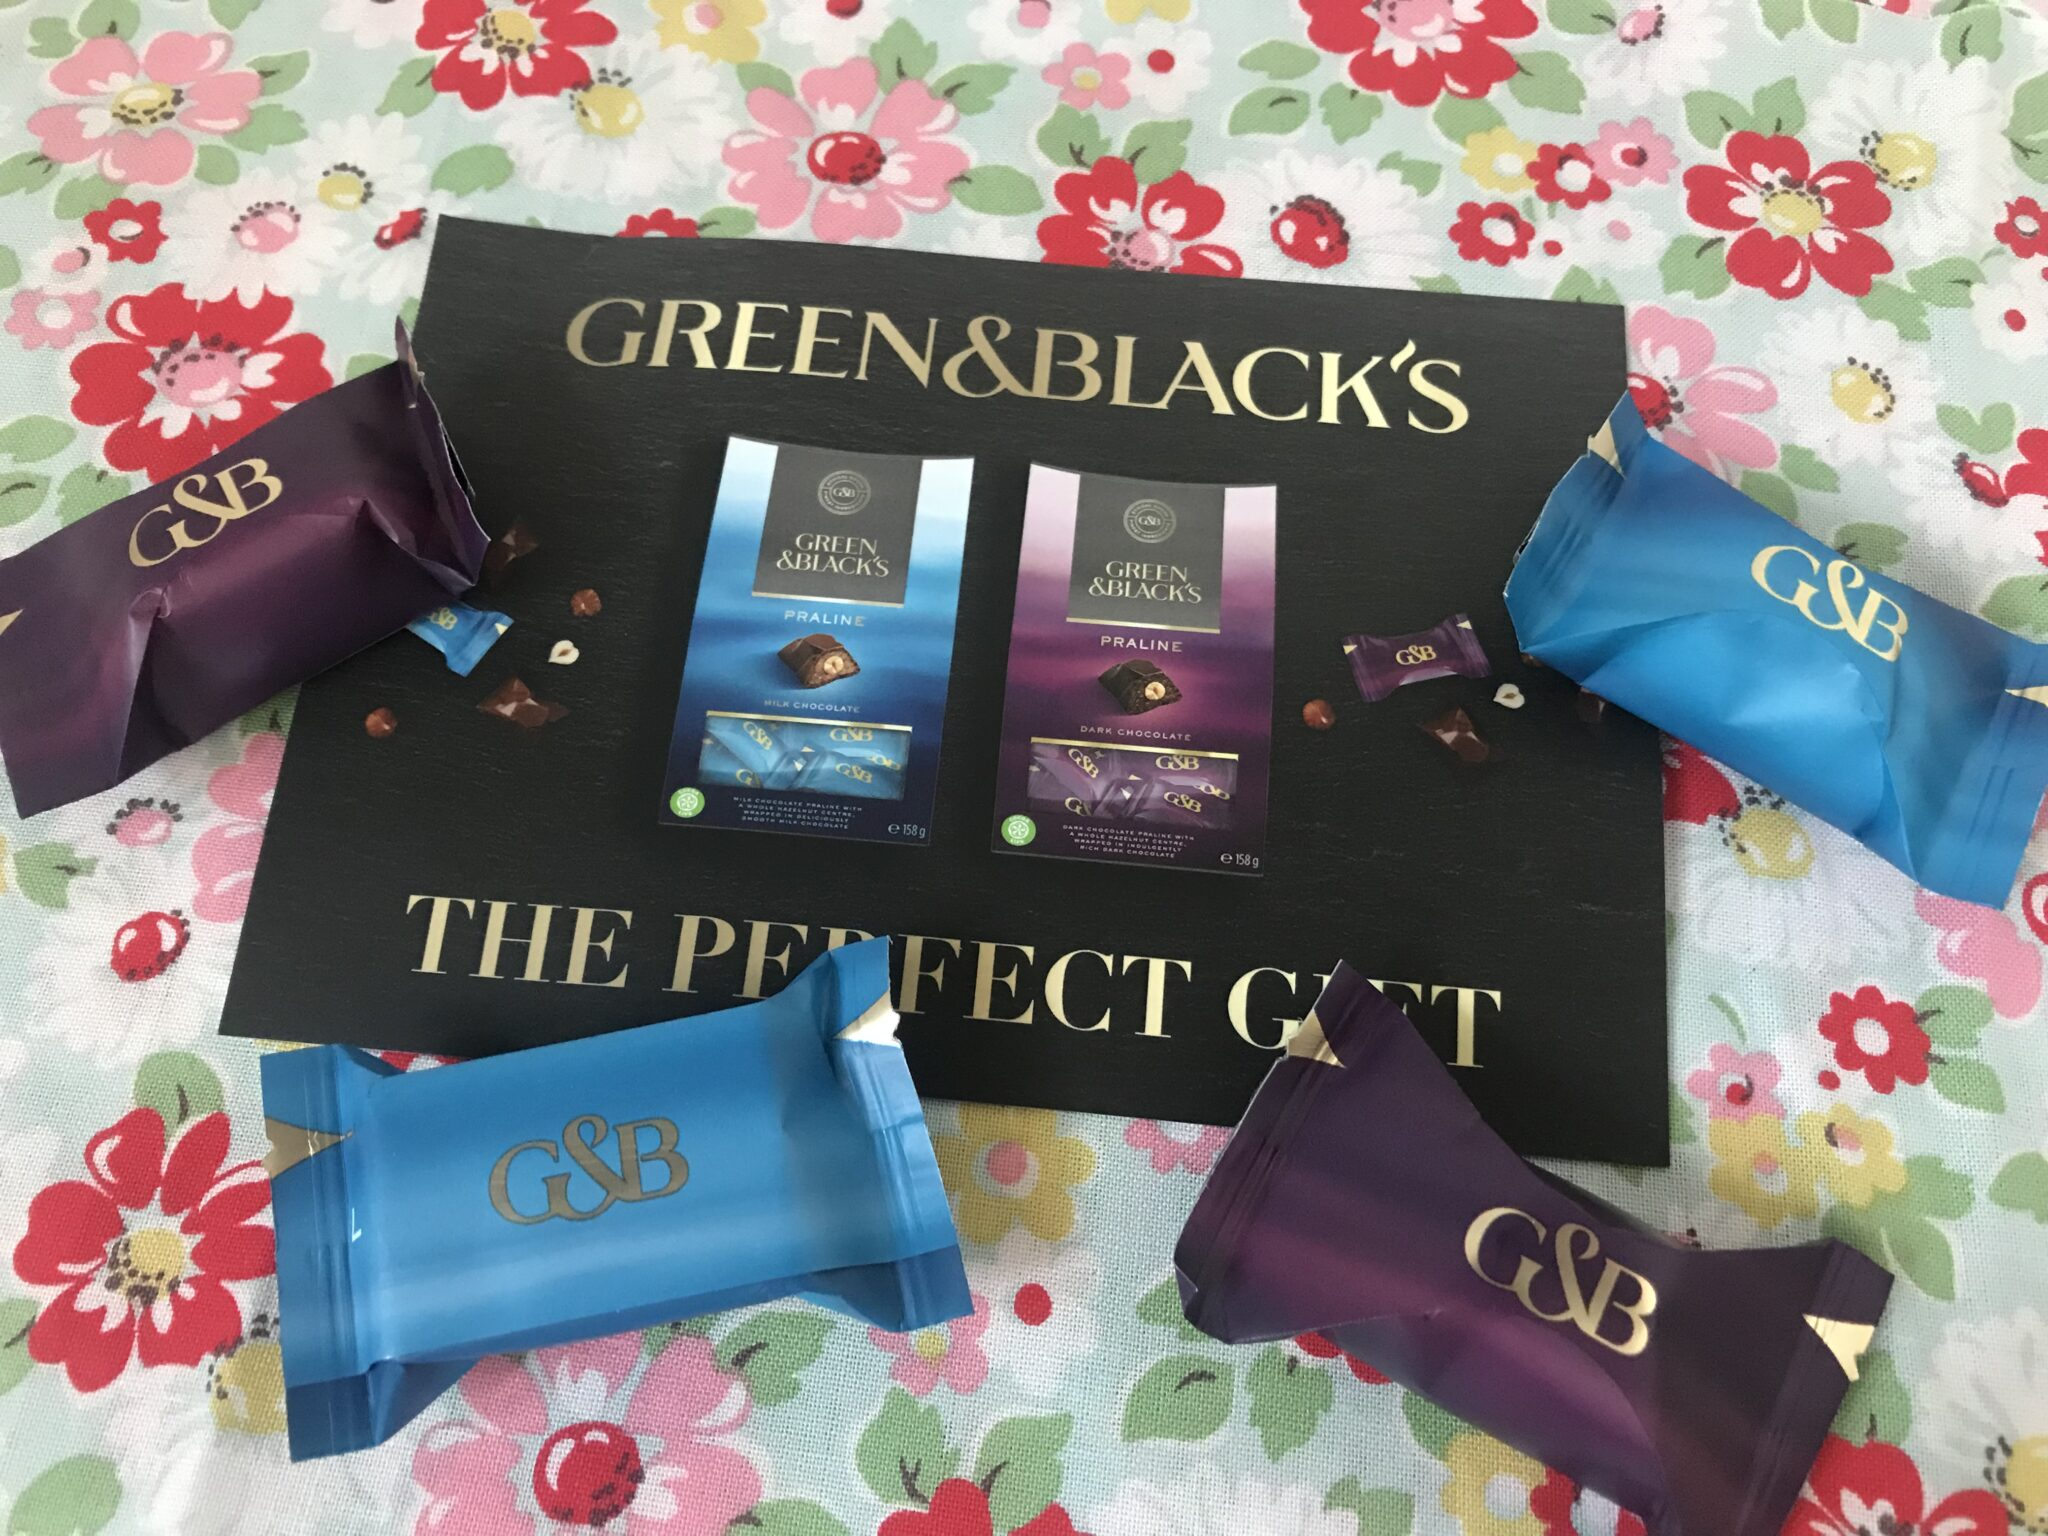 free green and blacks chocolates